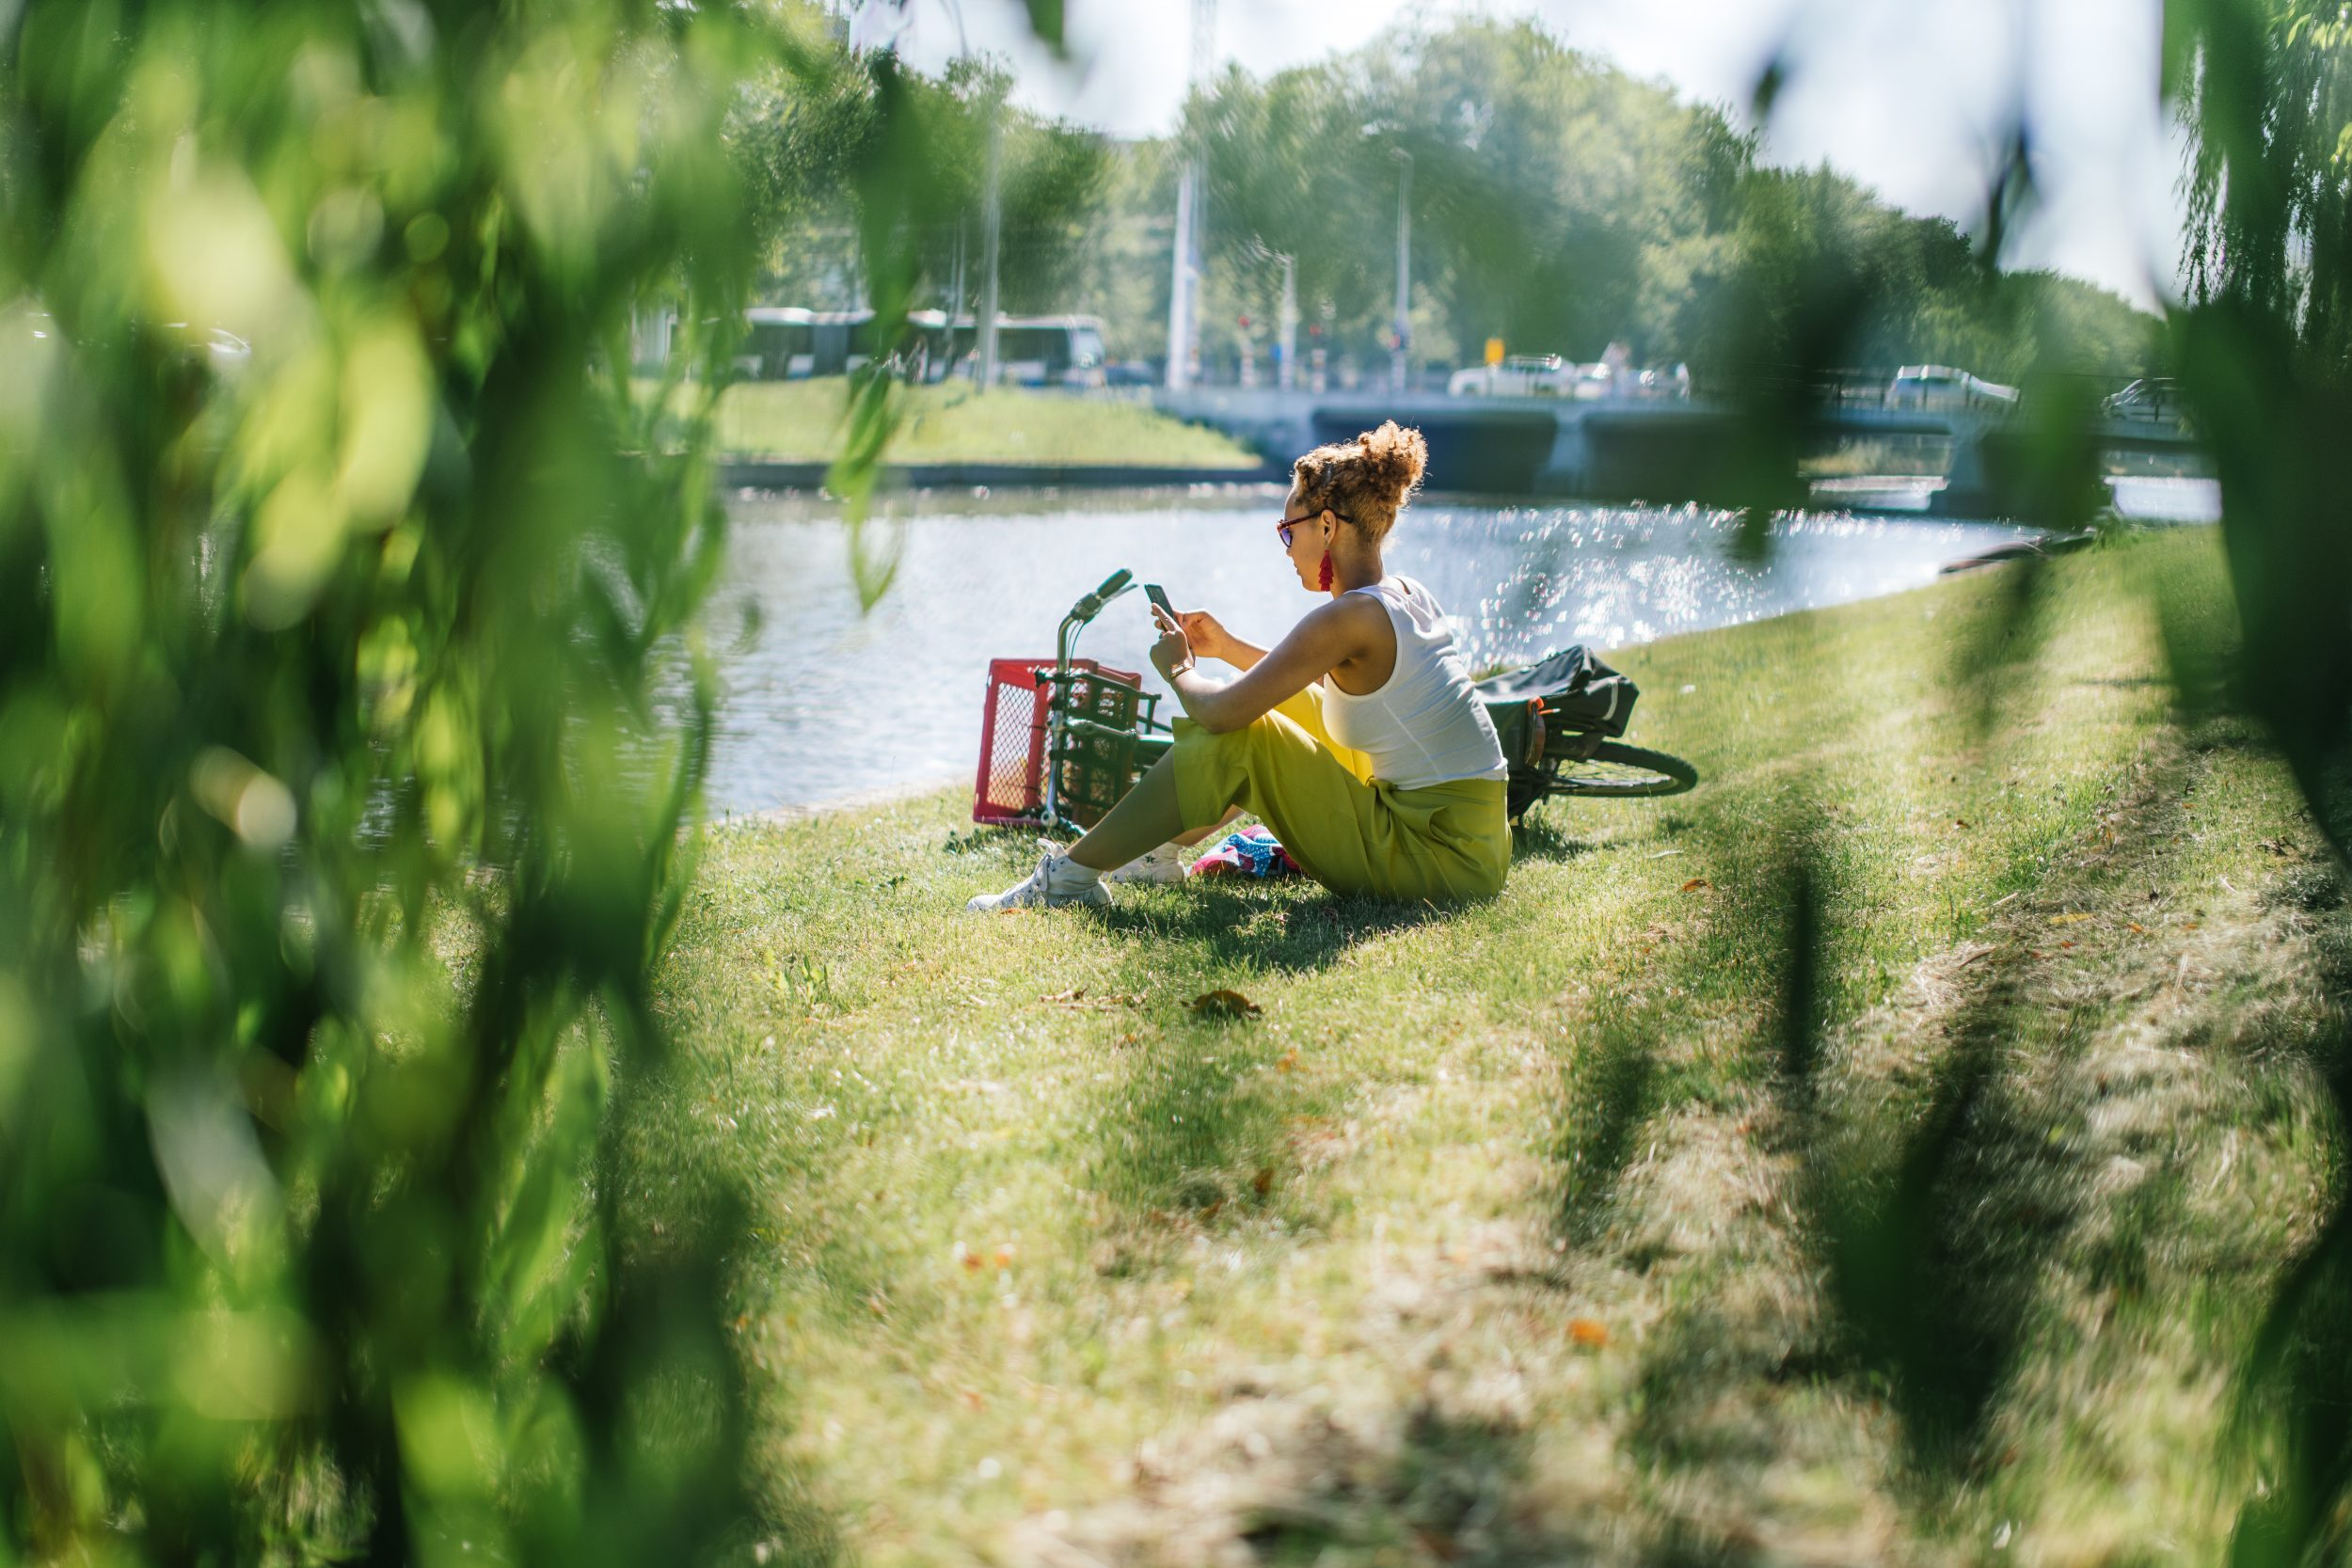 A woman sitting beside her bike on a grassy slope beside a canal.